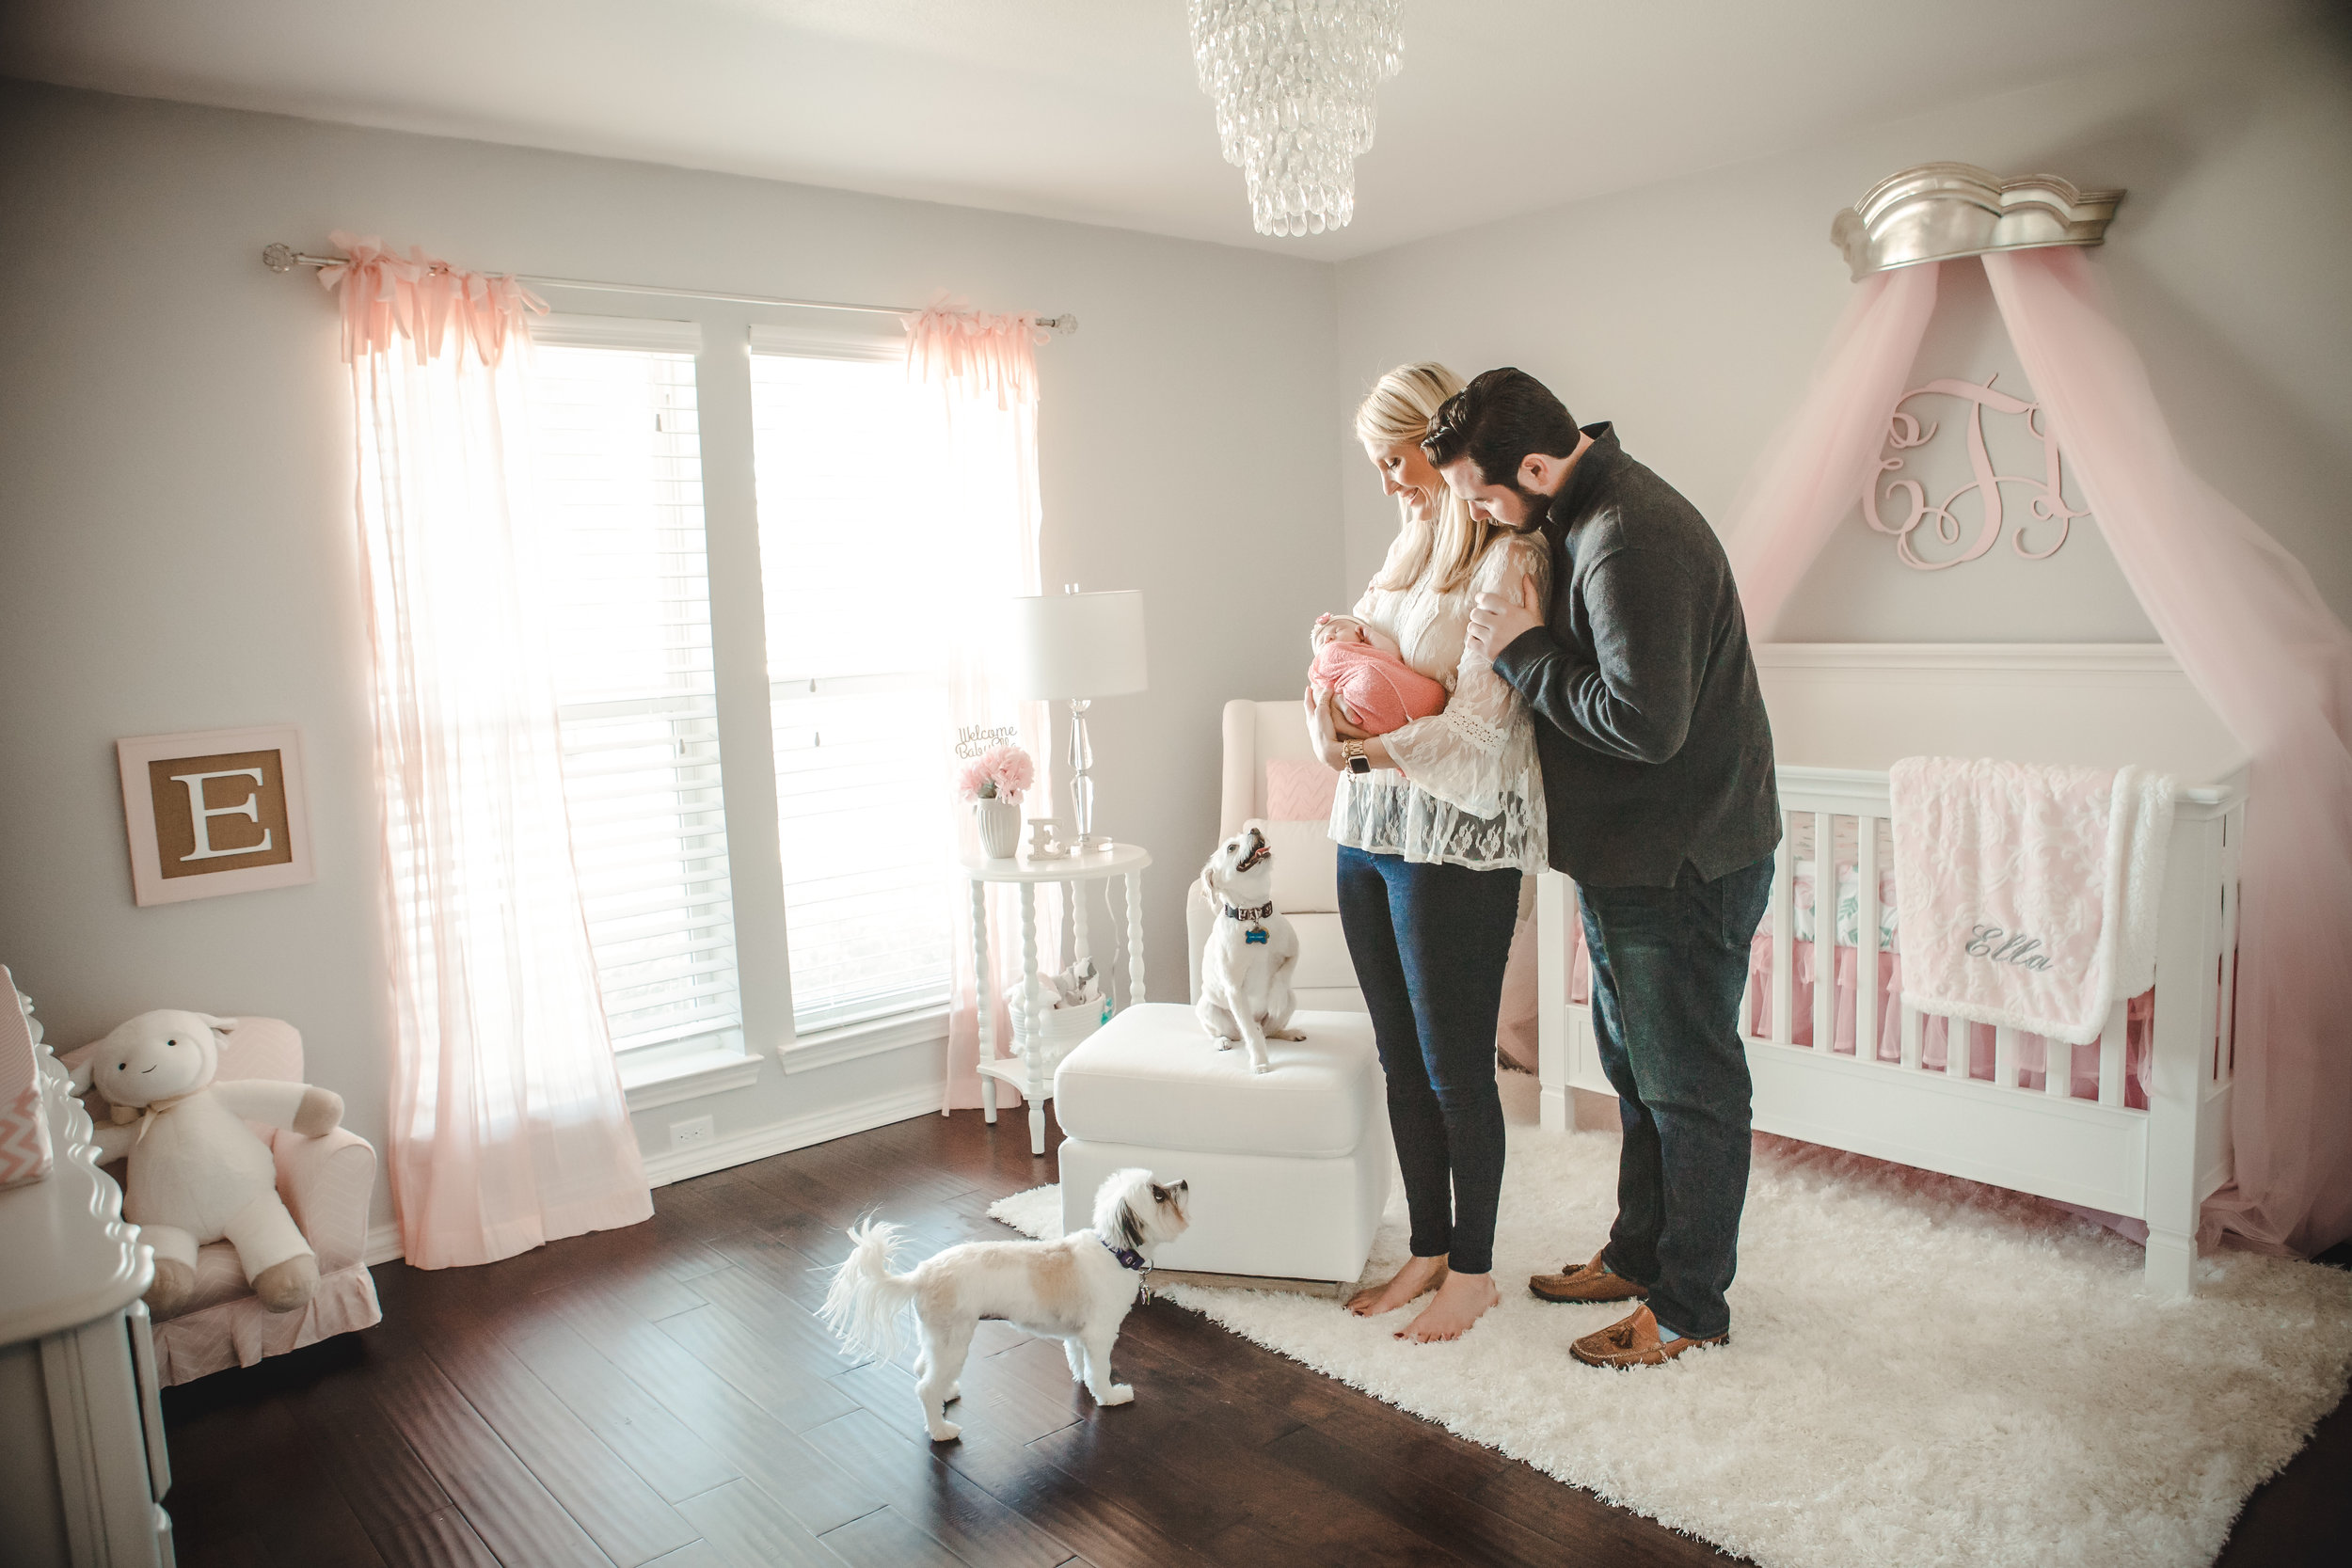 Maggie | Teacher | Richardson TX - Jessica made our newborn session so easy. We felt comfortable during the shoot, and she was amazing with our little one. Our family will treasure the sweet images she captured.